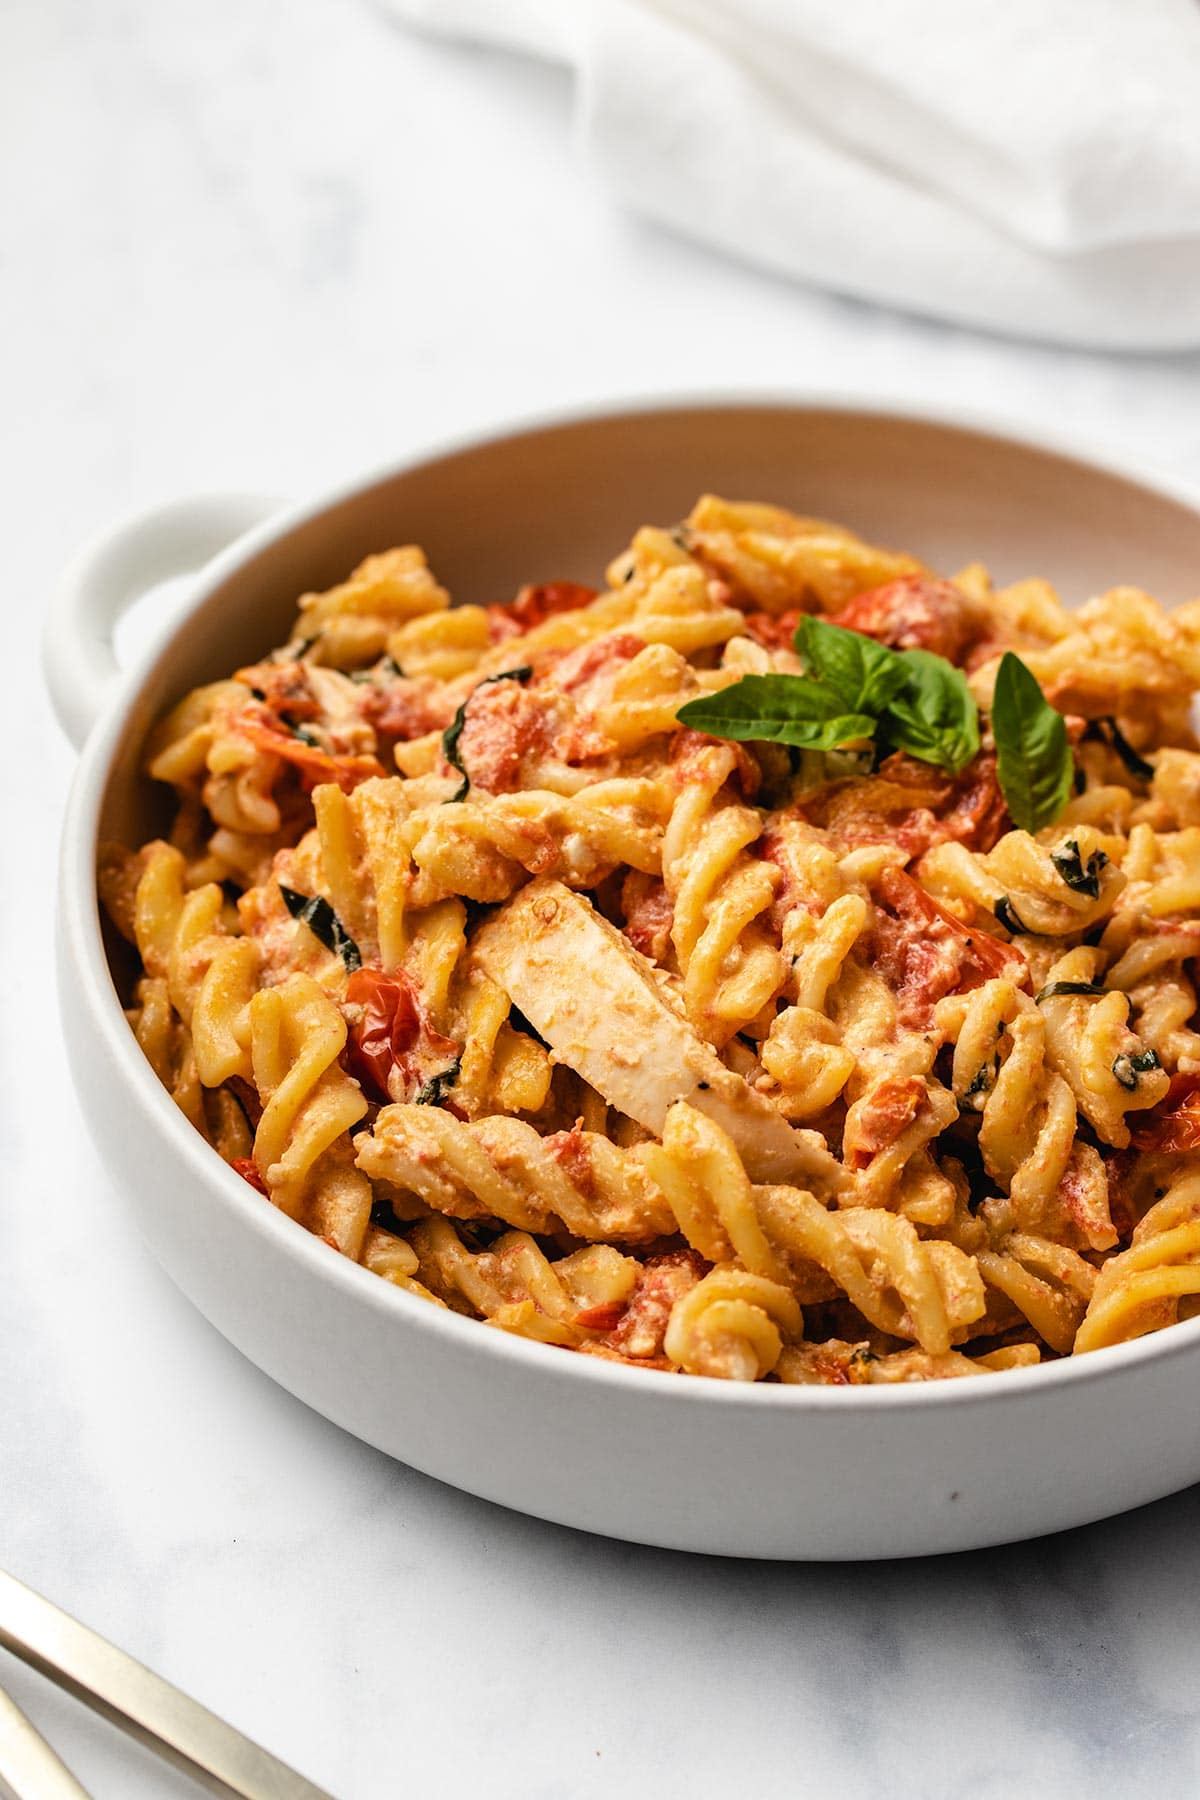 Feta Chicken Pasta in a white bowl garnished with fresh basil.